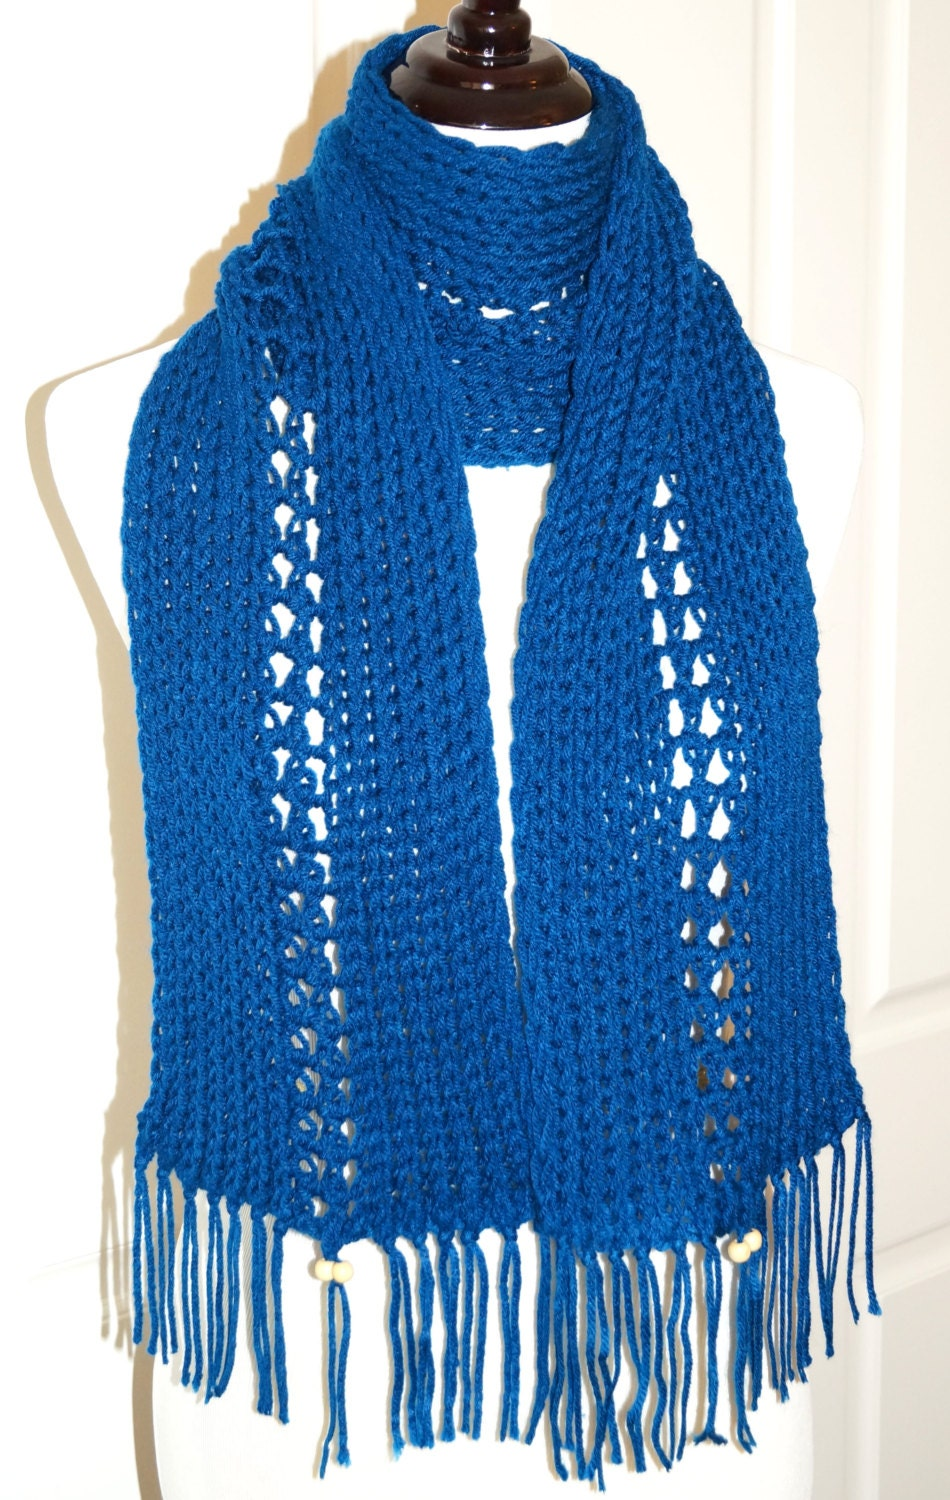 Knitting Loom Scarf Fringe : Loom knit scarf by FamAffairDesigns on Etsy